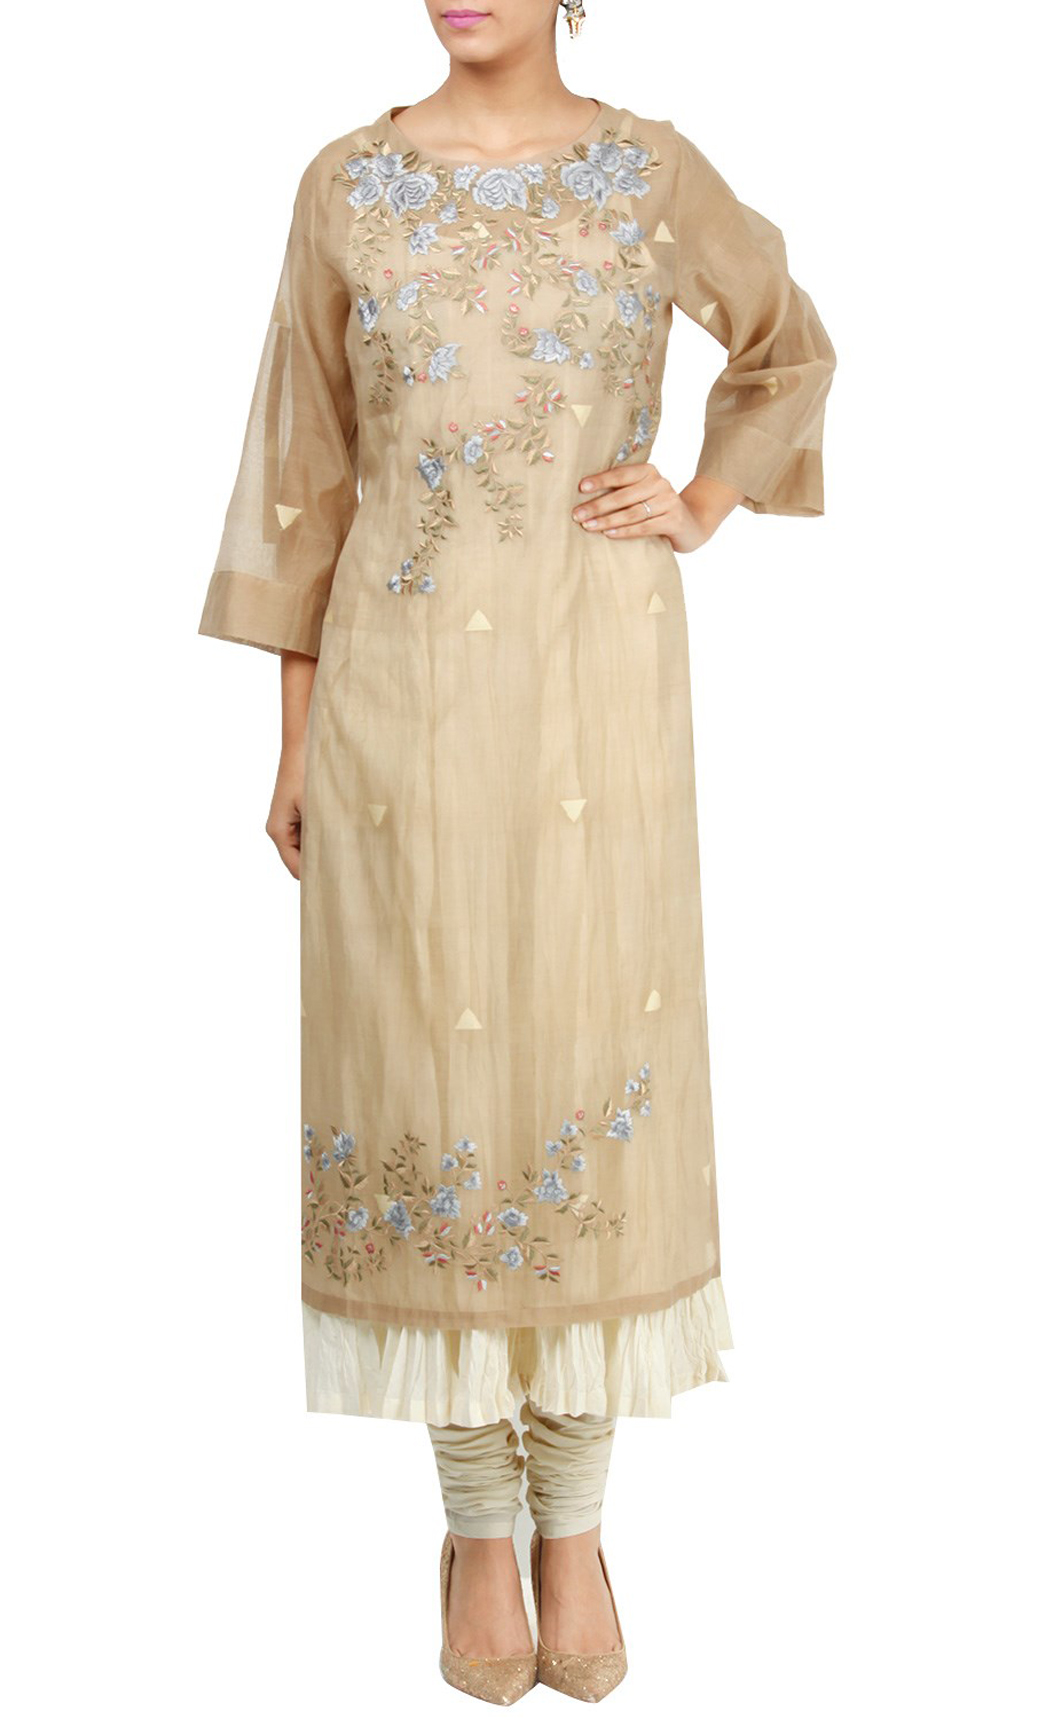 Beige and White Double Layered Silk Embroidered Kurta Set - Buy Online